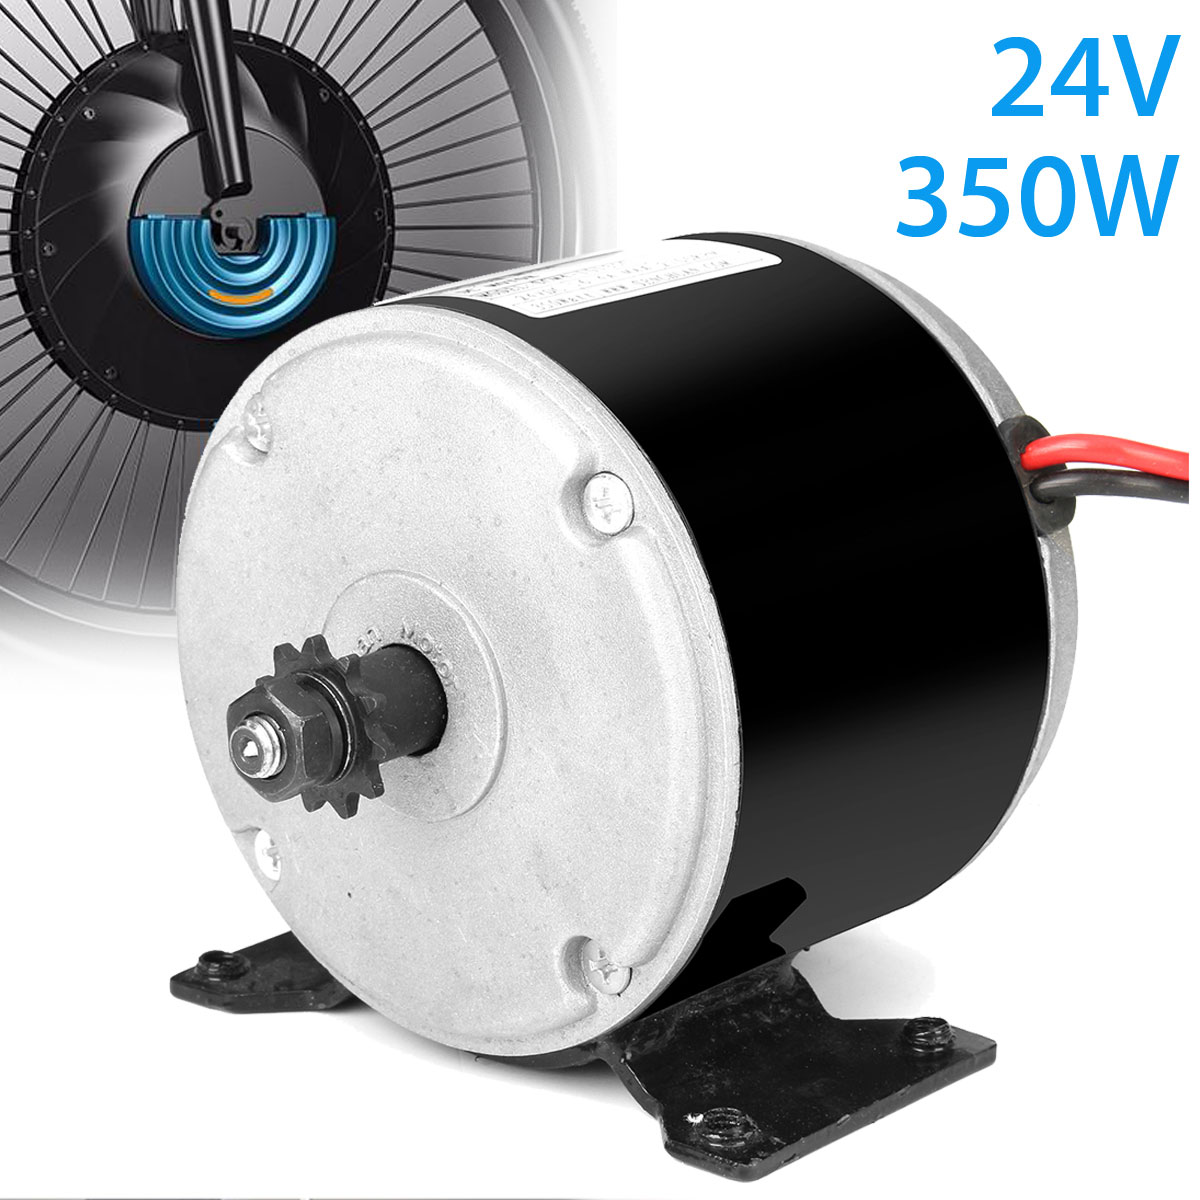 1 pcs Brand New High Quality 24V 350W DC Motor Permanent Magnet Generator Micro Motor for DIY nine west туфли